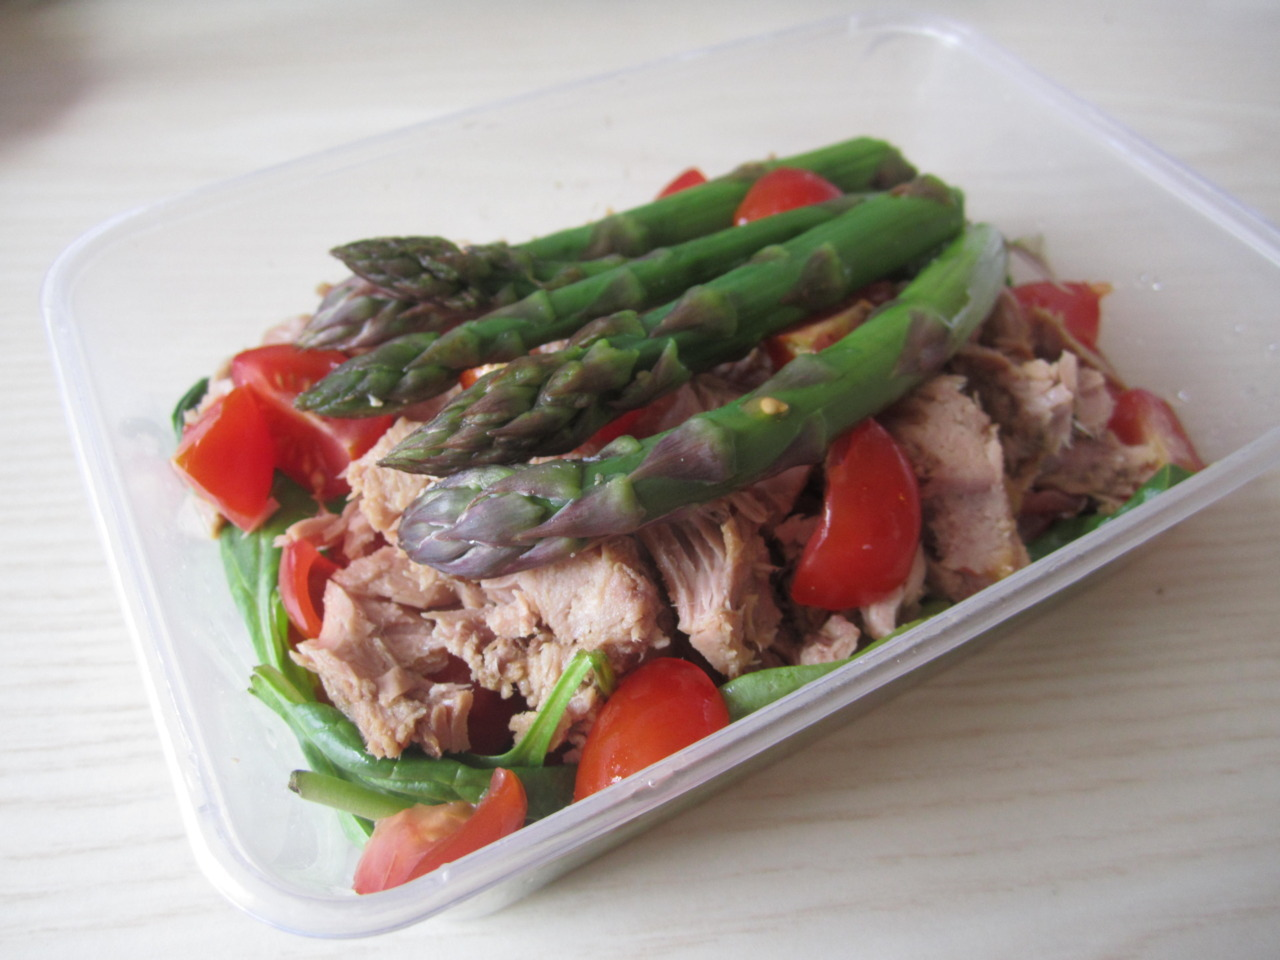 Yesterday's packed lunch salad to eat in the sun :  A can of tuna dressed with lemon juice, five grilled asparagus spears, lots of cherry tomatoes and some spinach leaves.   Grill love